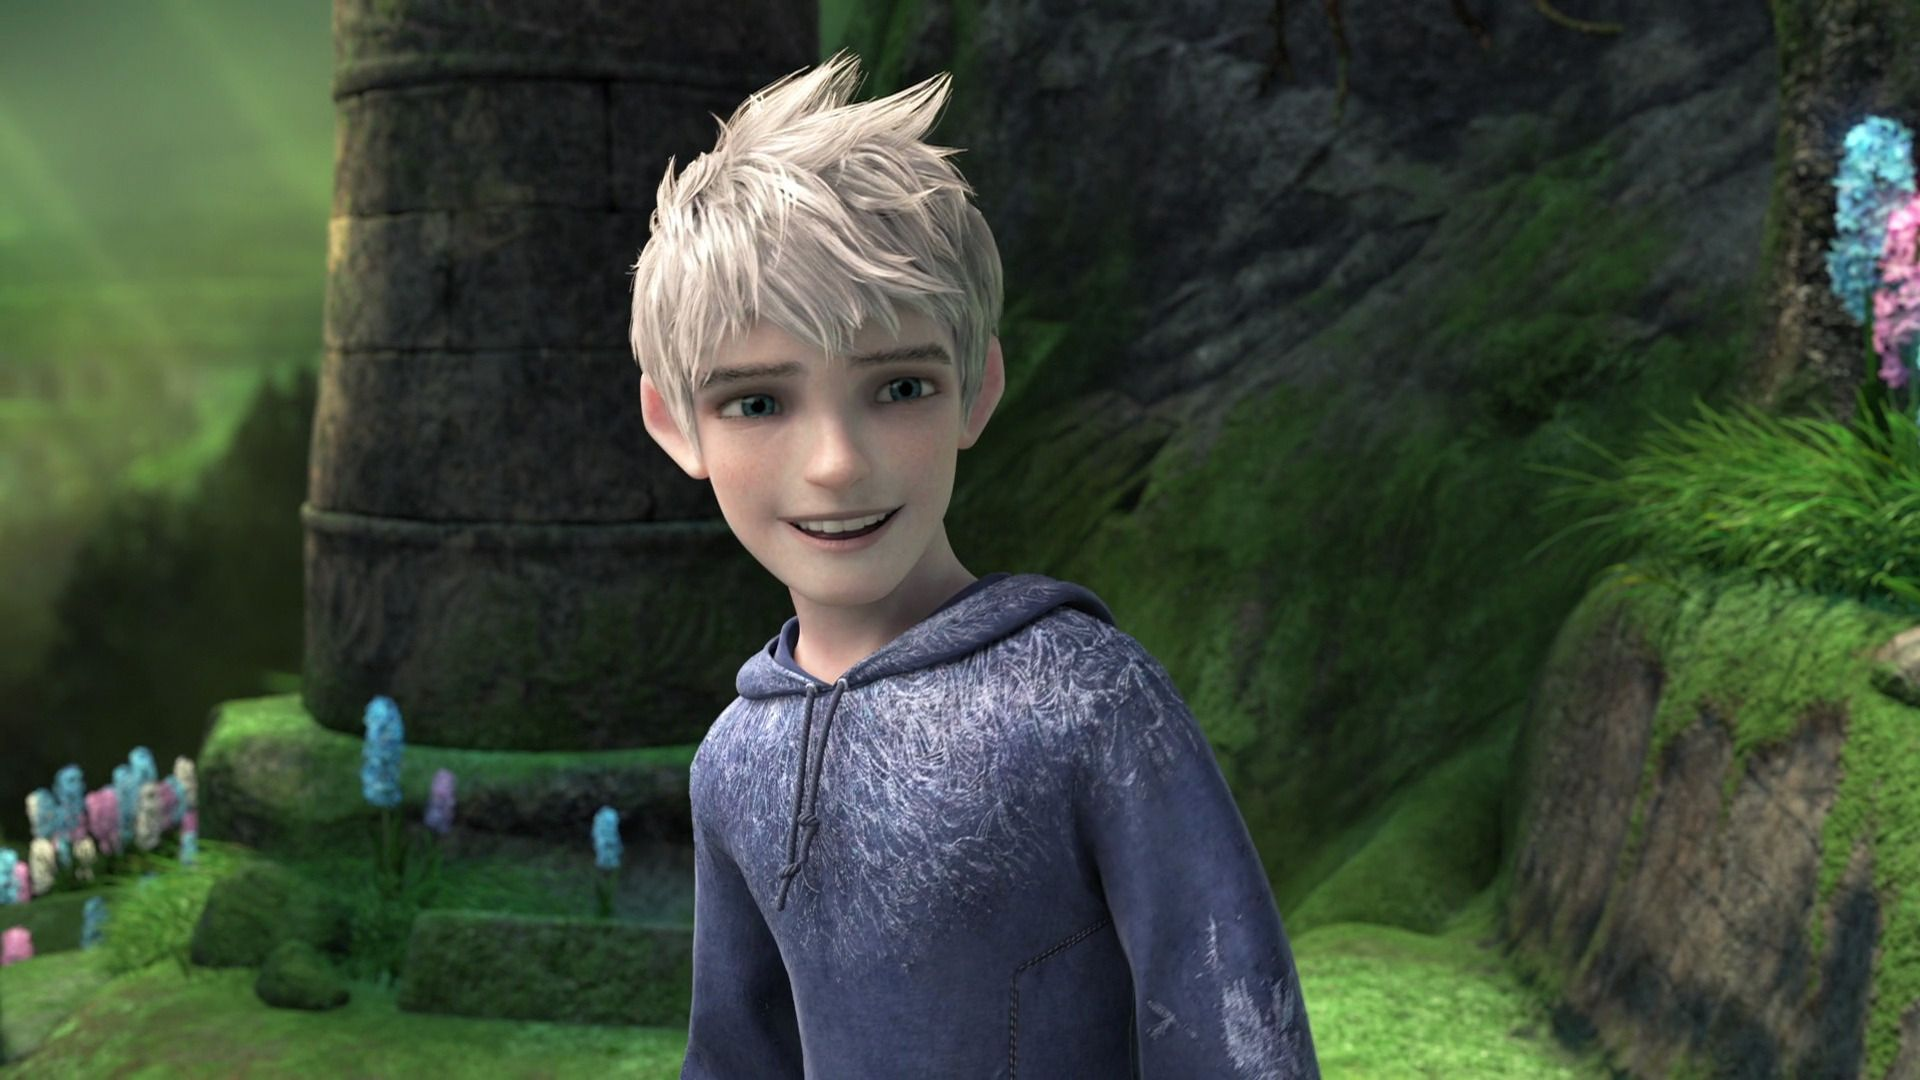 December cute shot of jack frost rise of the guardians hd wallpapers december cute shot of jack frost rise of the guardians hd wallpapers 1920 1080 thecheapjerseys Images